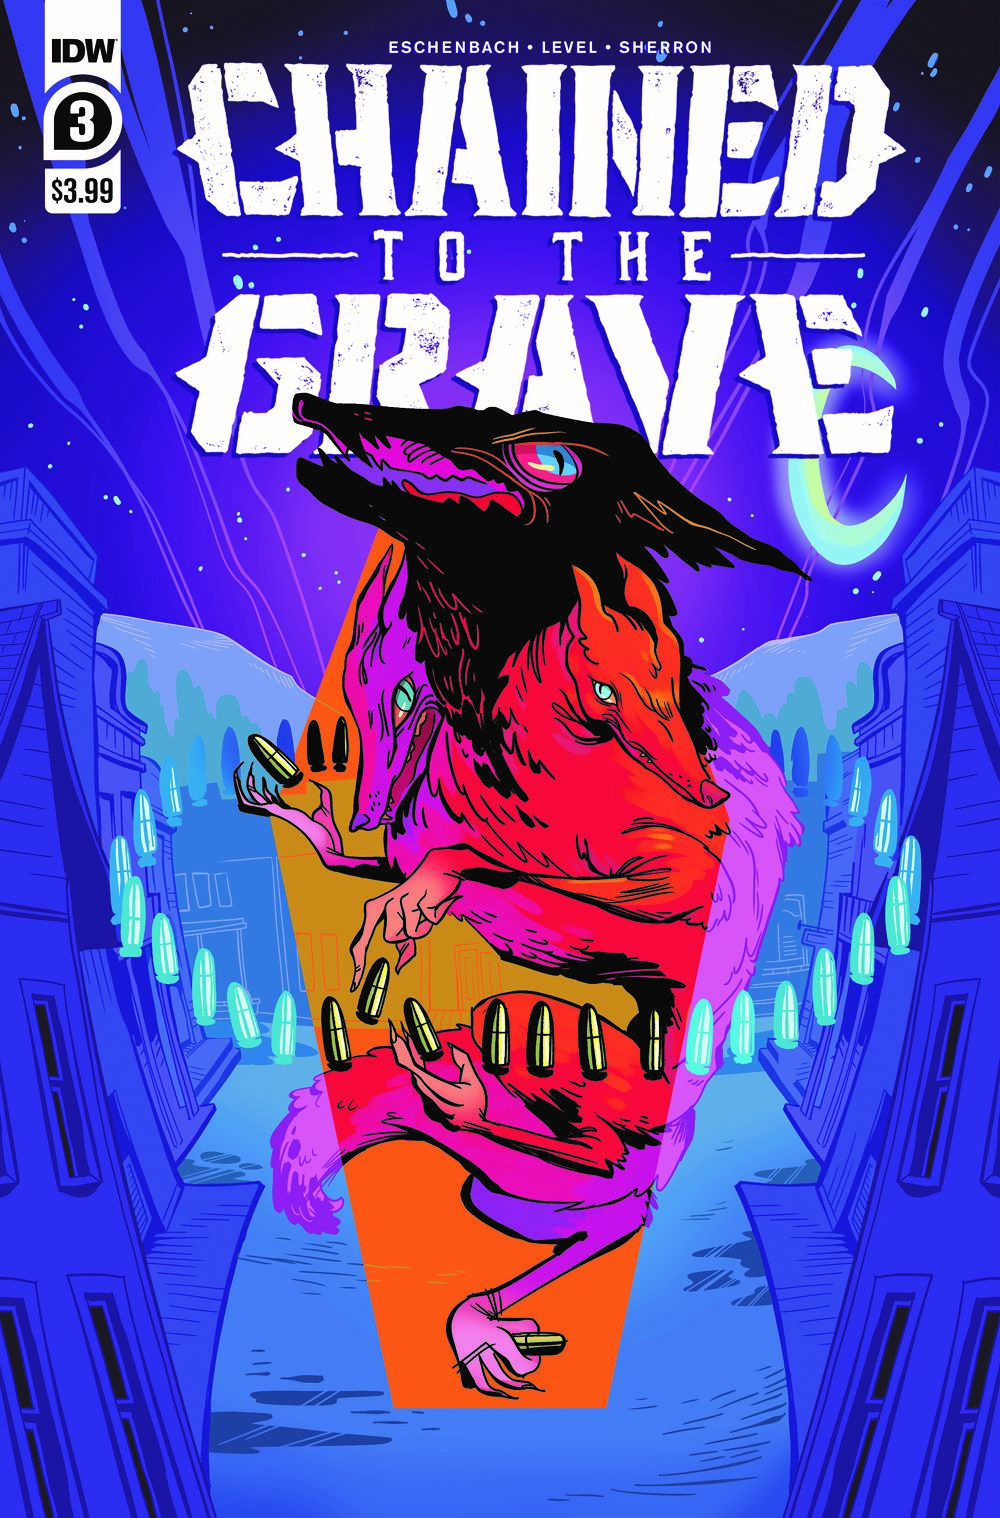 ChainedTTGrave03-cover ComicList Previews: CHAINED TO THE GRAVE #3 (OF 5)